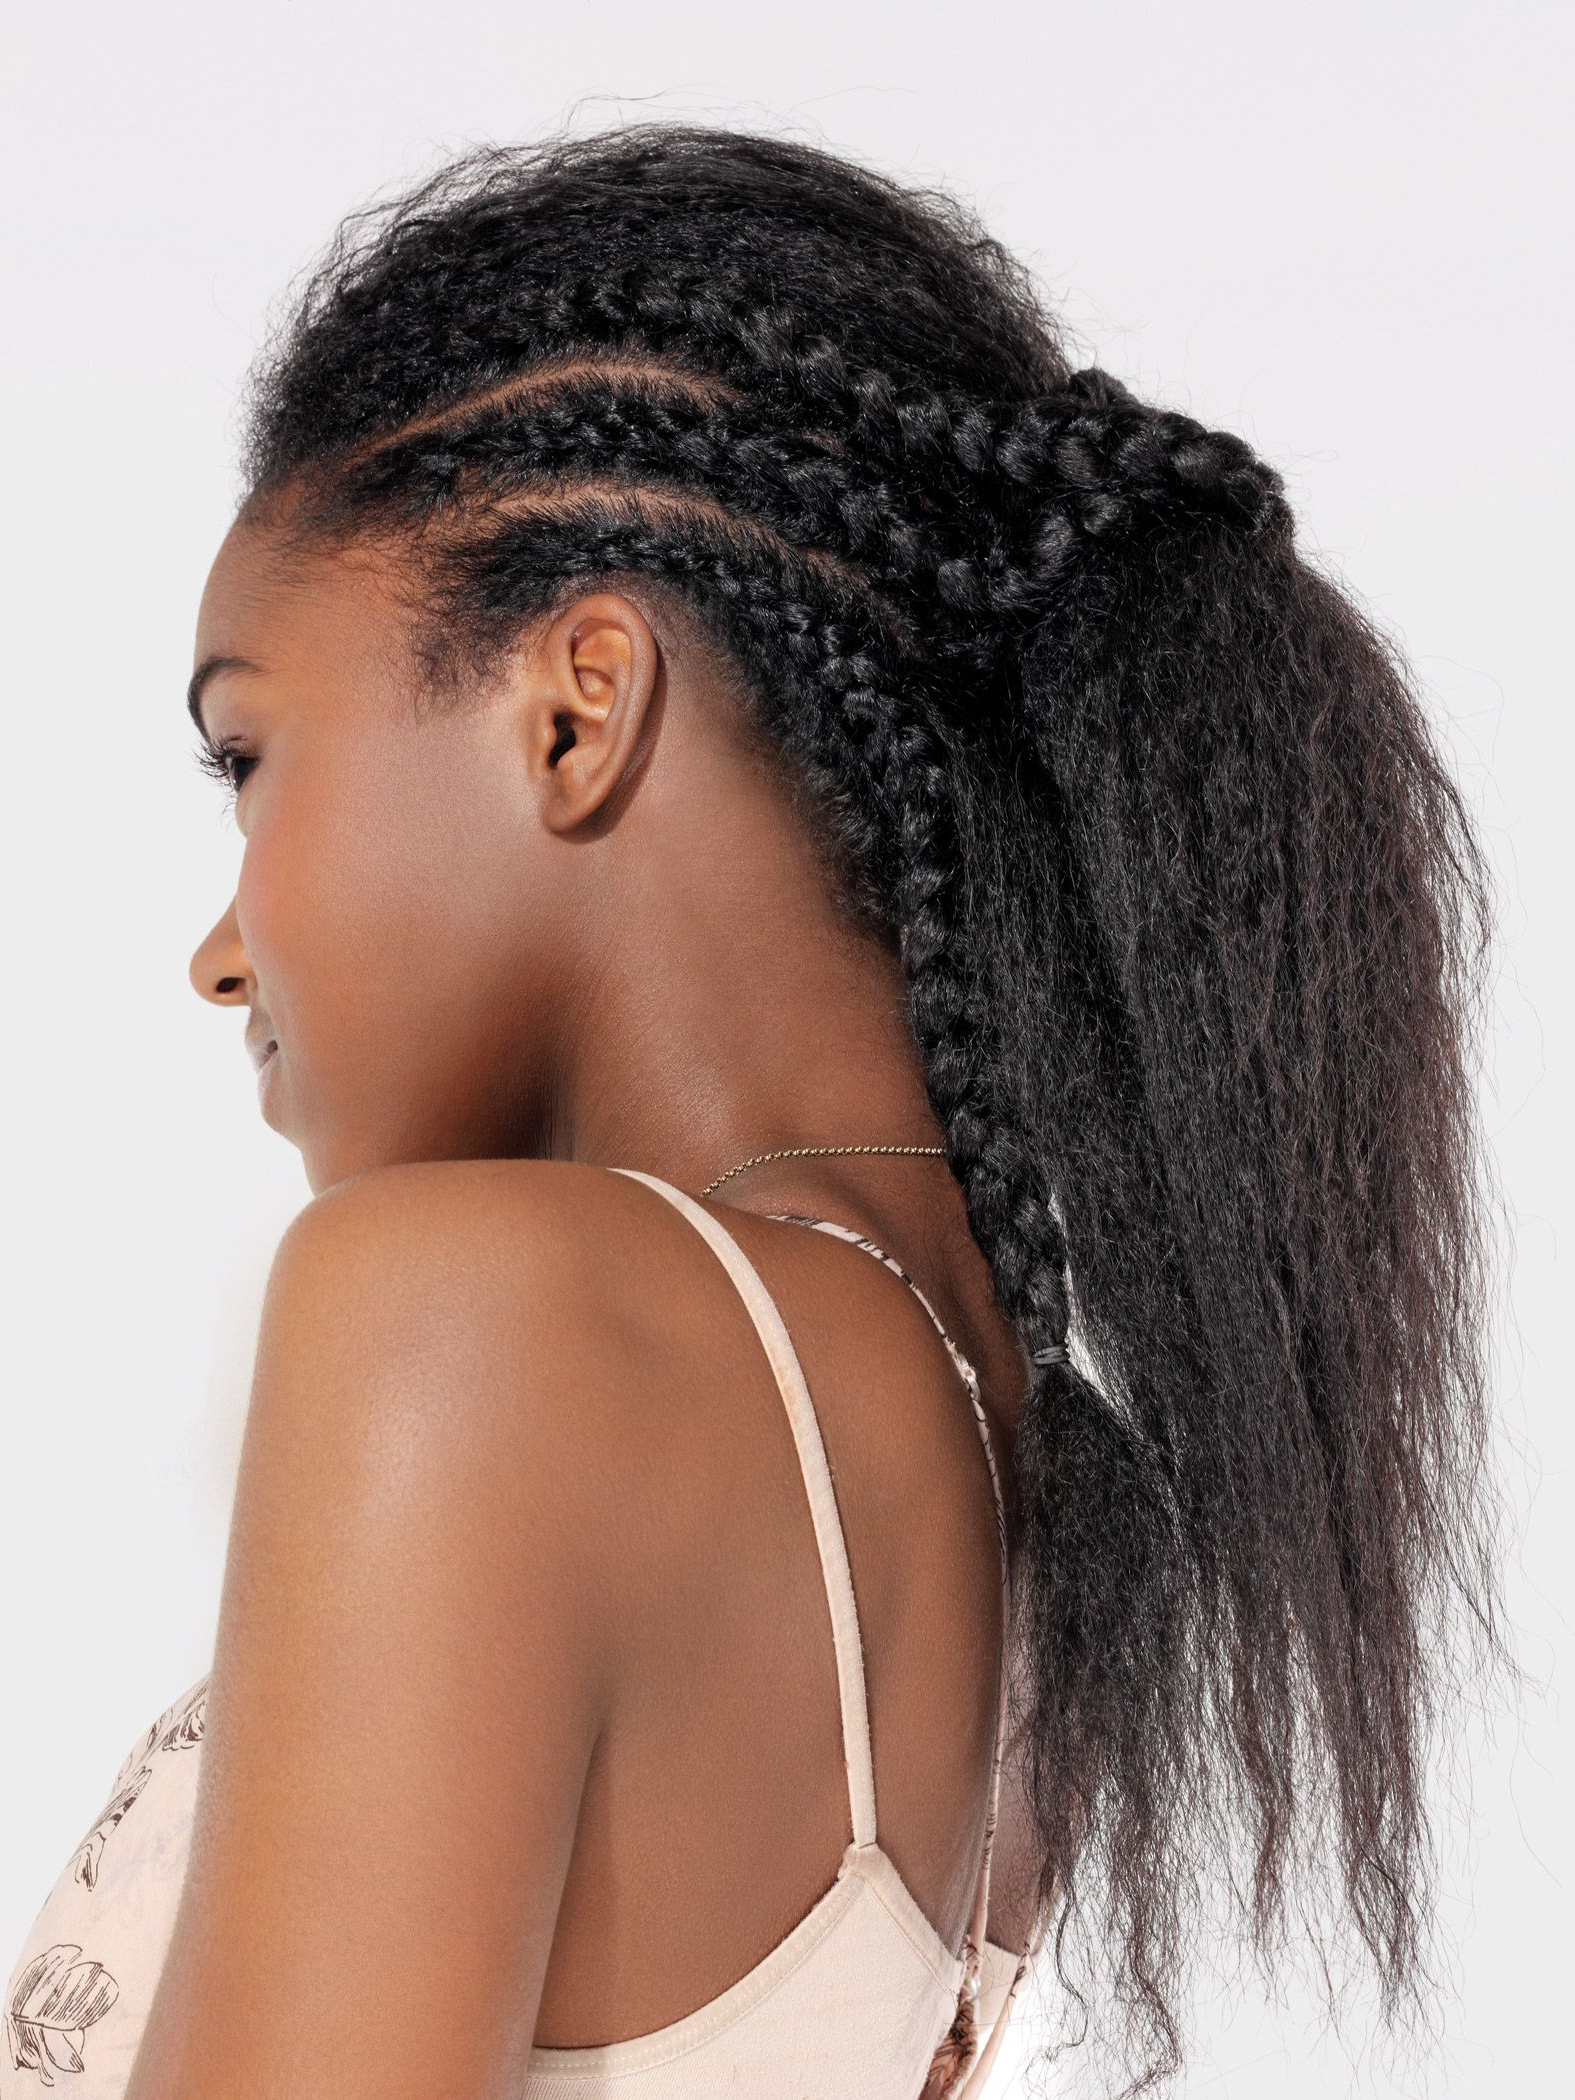 Latest Super Tiny Braids Intended For 42 Braid Hairstyle Ideas For Teens – Best Braided Hairstyles (View 19 of 20)